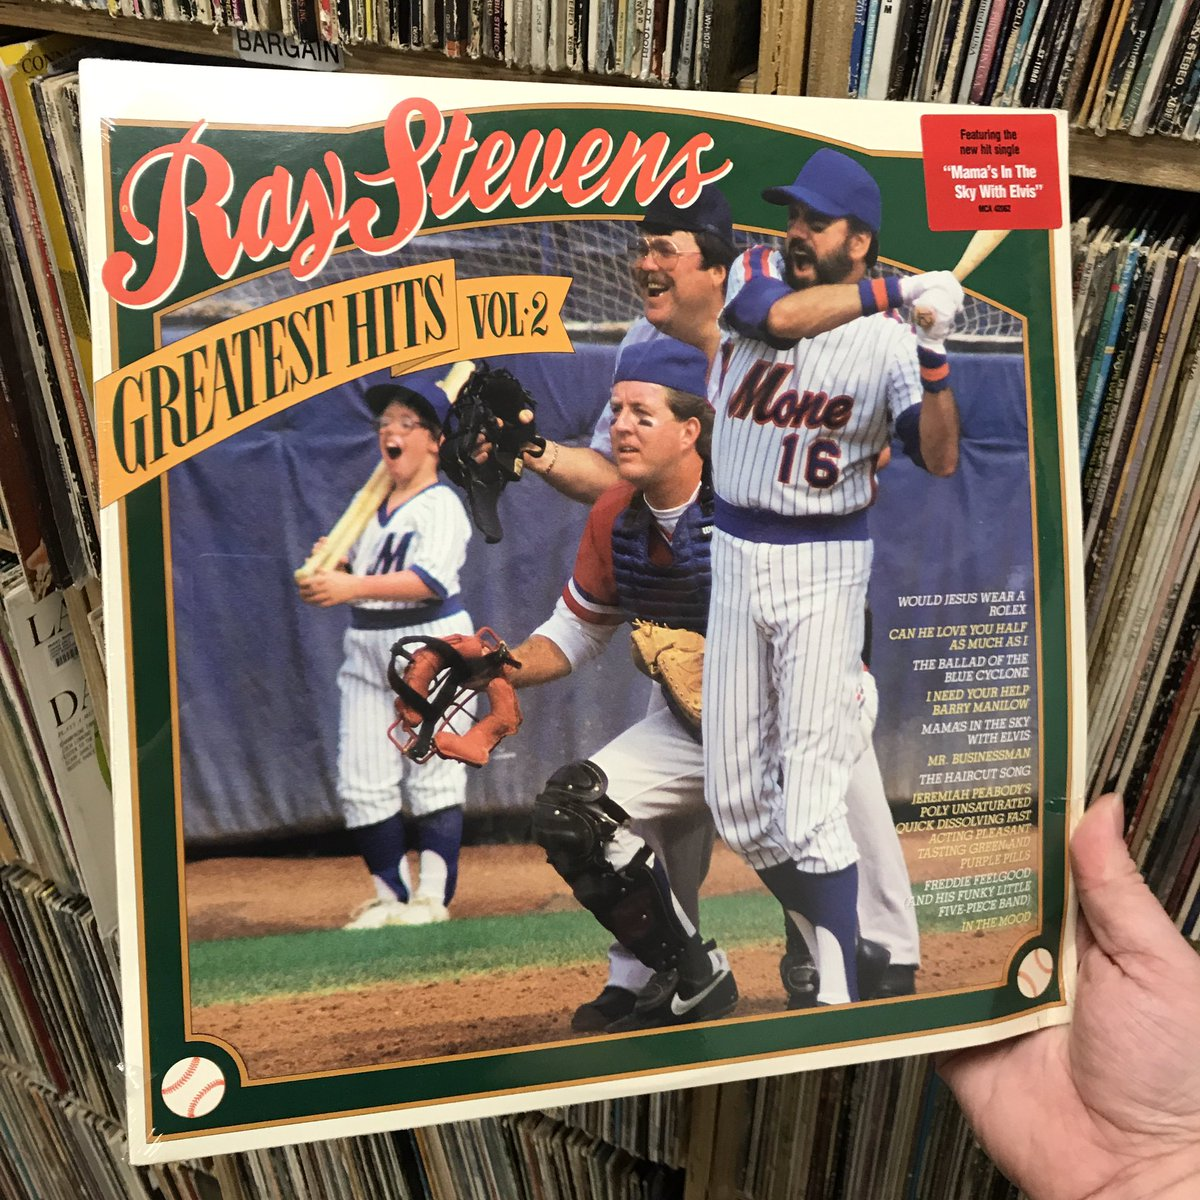 Ray Stevens On Twitter Spotted This Classic Ray Stevens Album